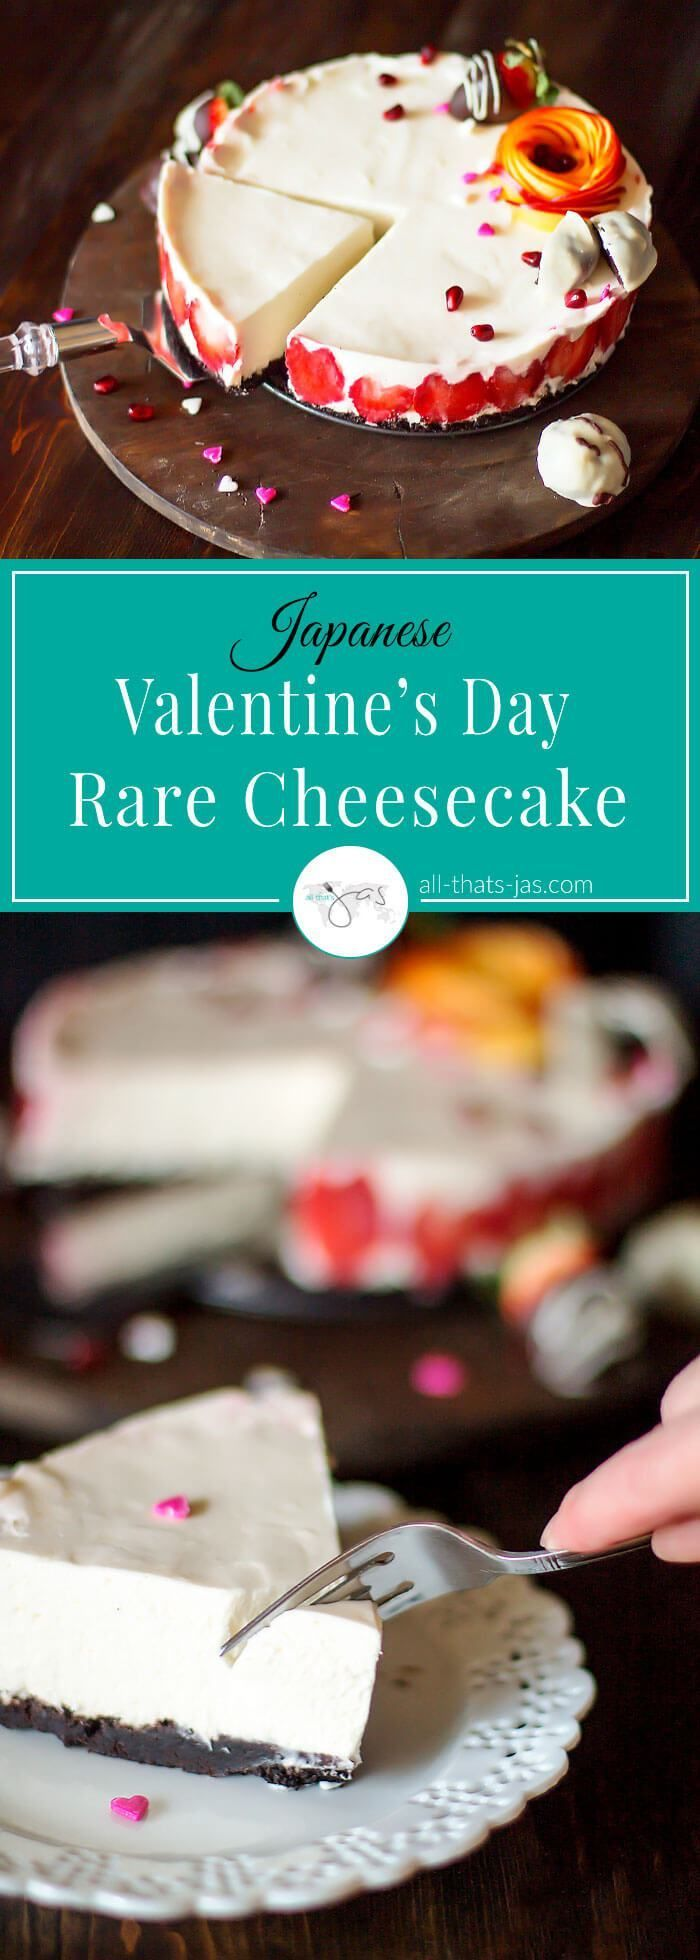 japanese-style no-bake cheesecake, aka rare cheesecake with strawberries is perfect to celebrate Valentine's Day with someone special.   allthatsjas.com   #nobakecheesecake #nobake #cheesecake #Japanese #rare #ValentinesDay #dessert